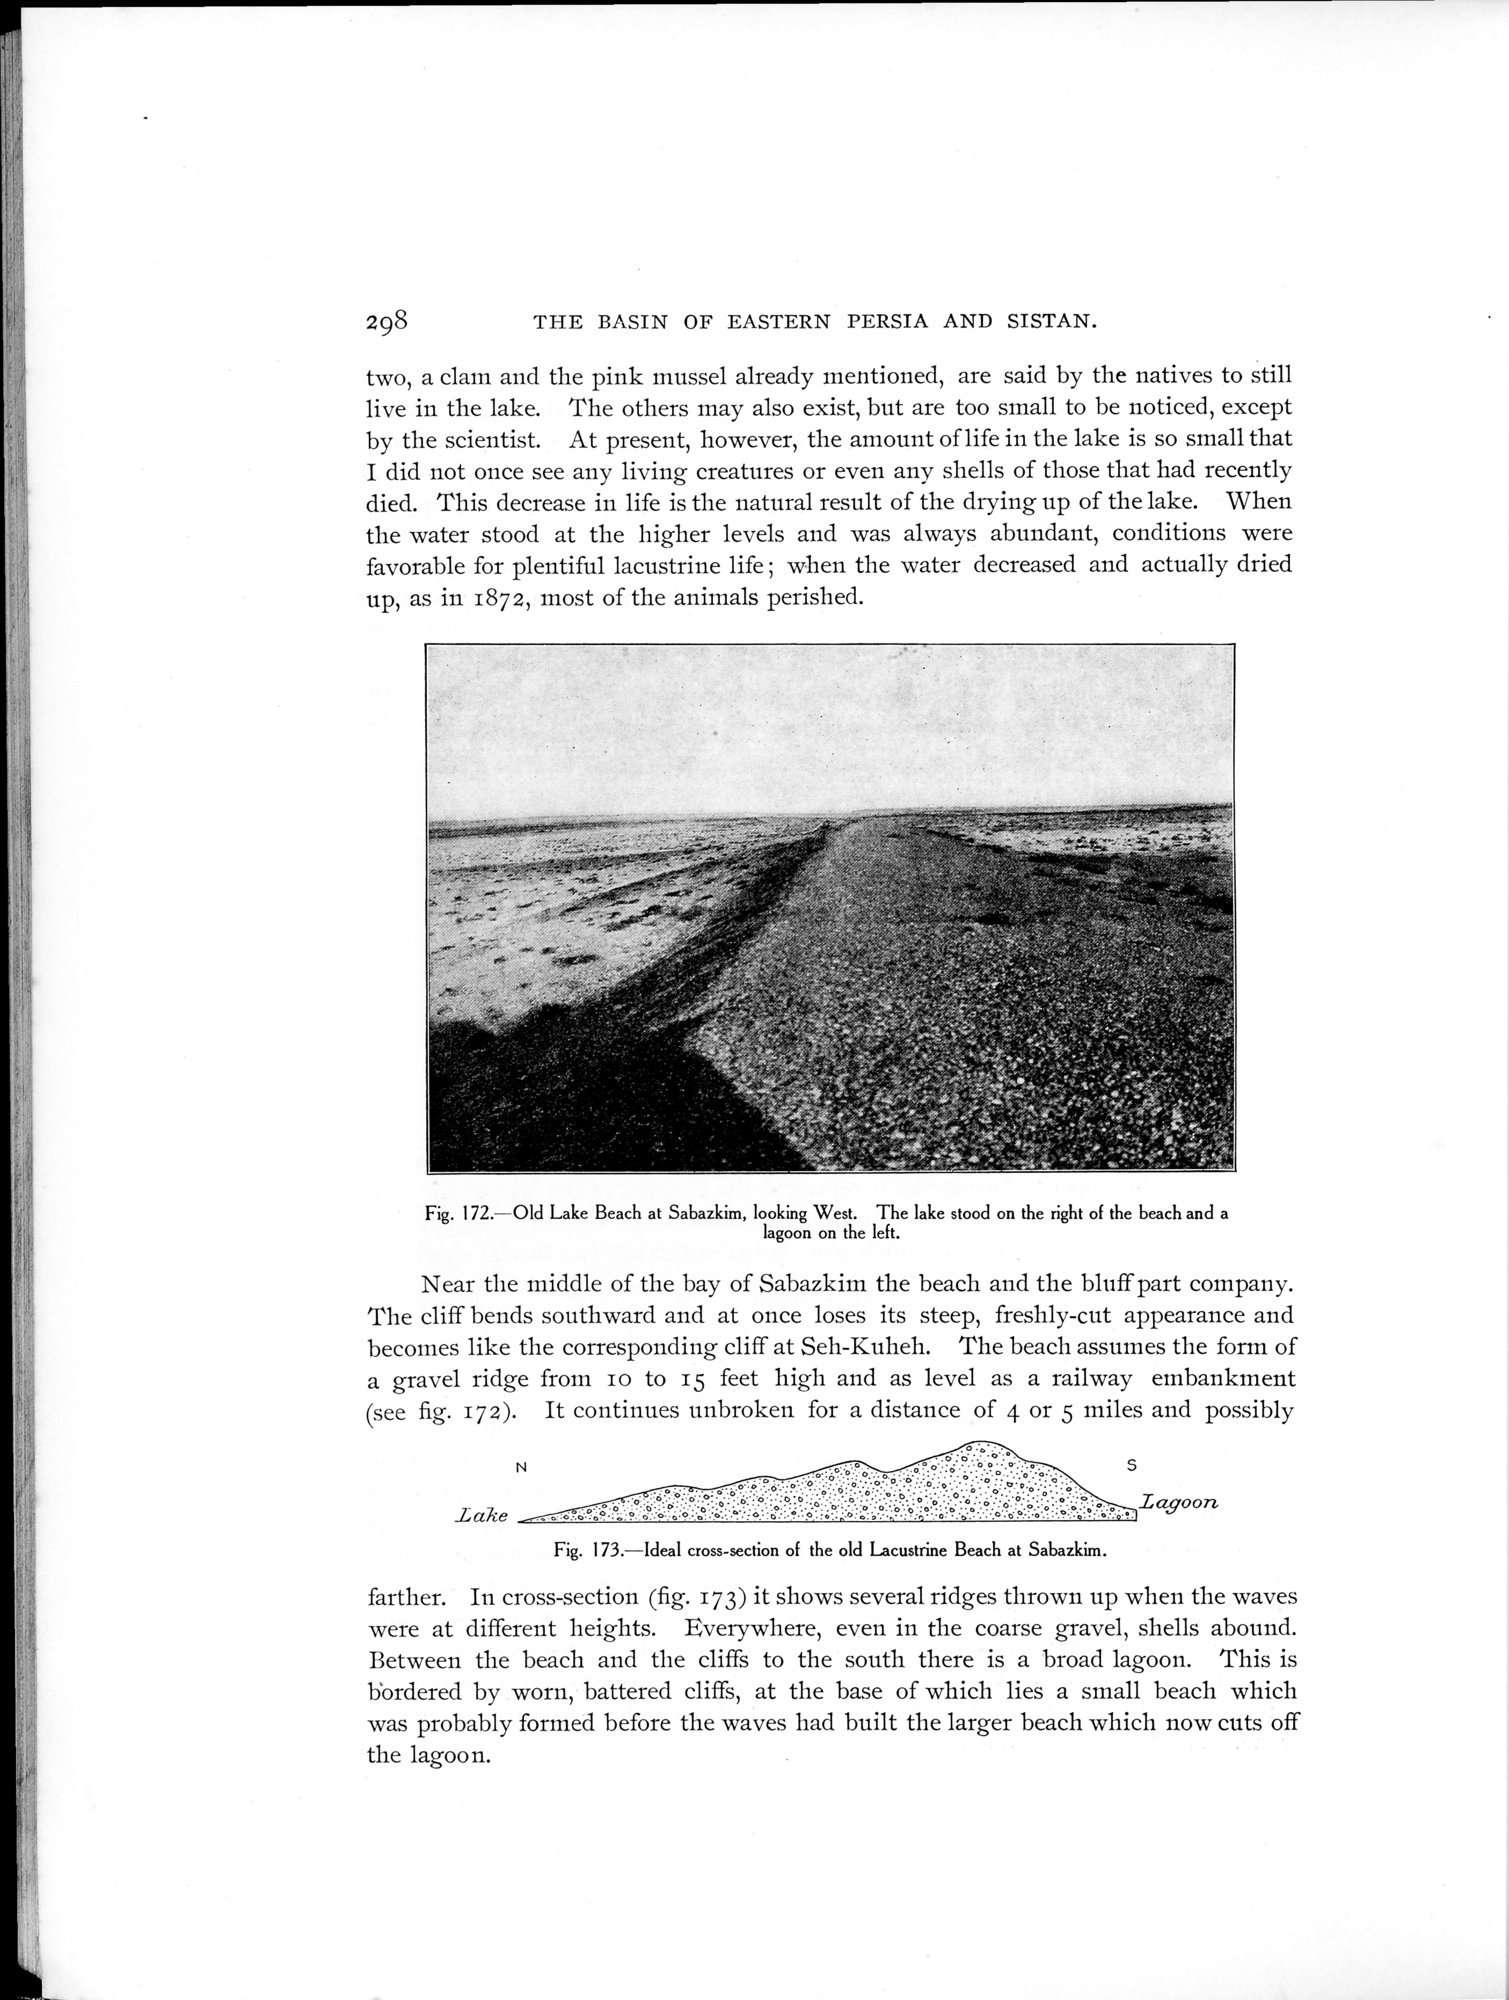 Explorations in Turkestan 1903 : vol.1 / Page 334 (Grayscale High Resolution Image)